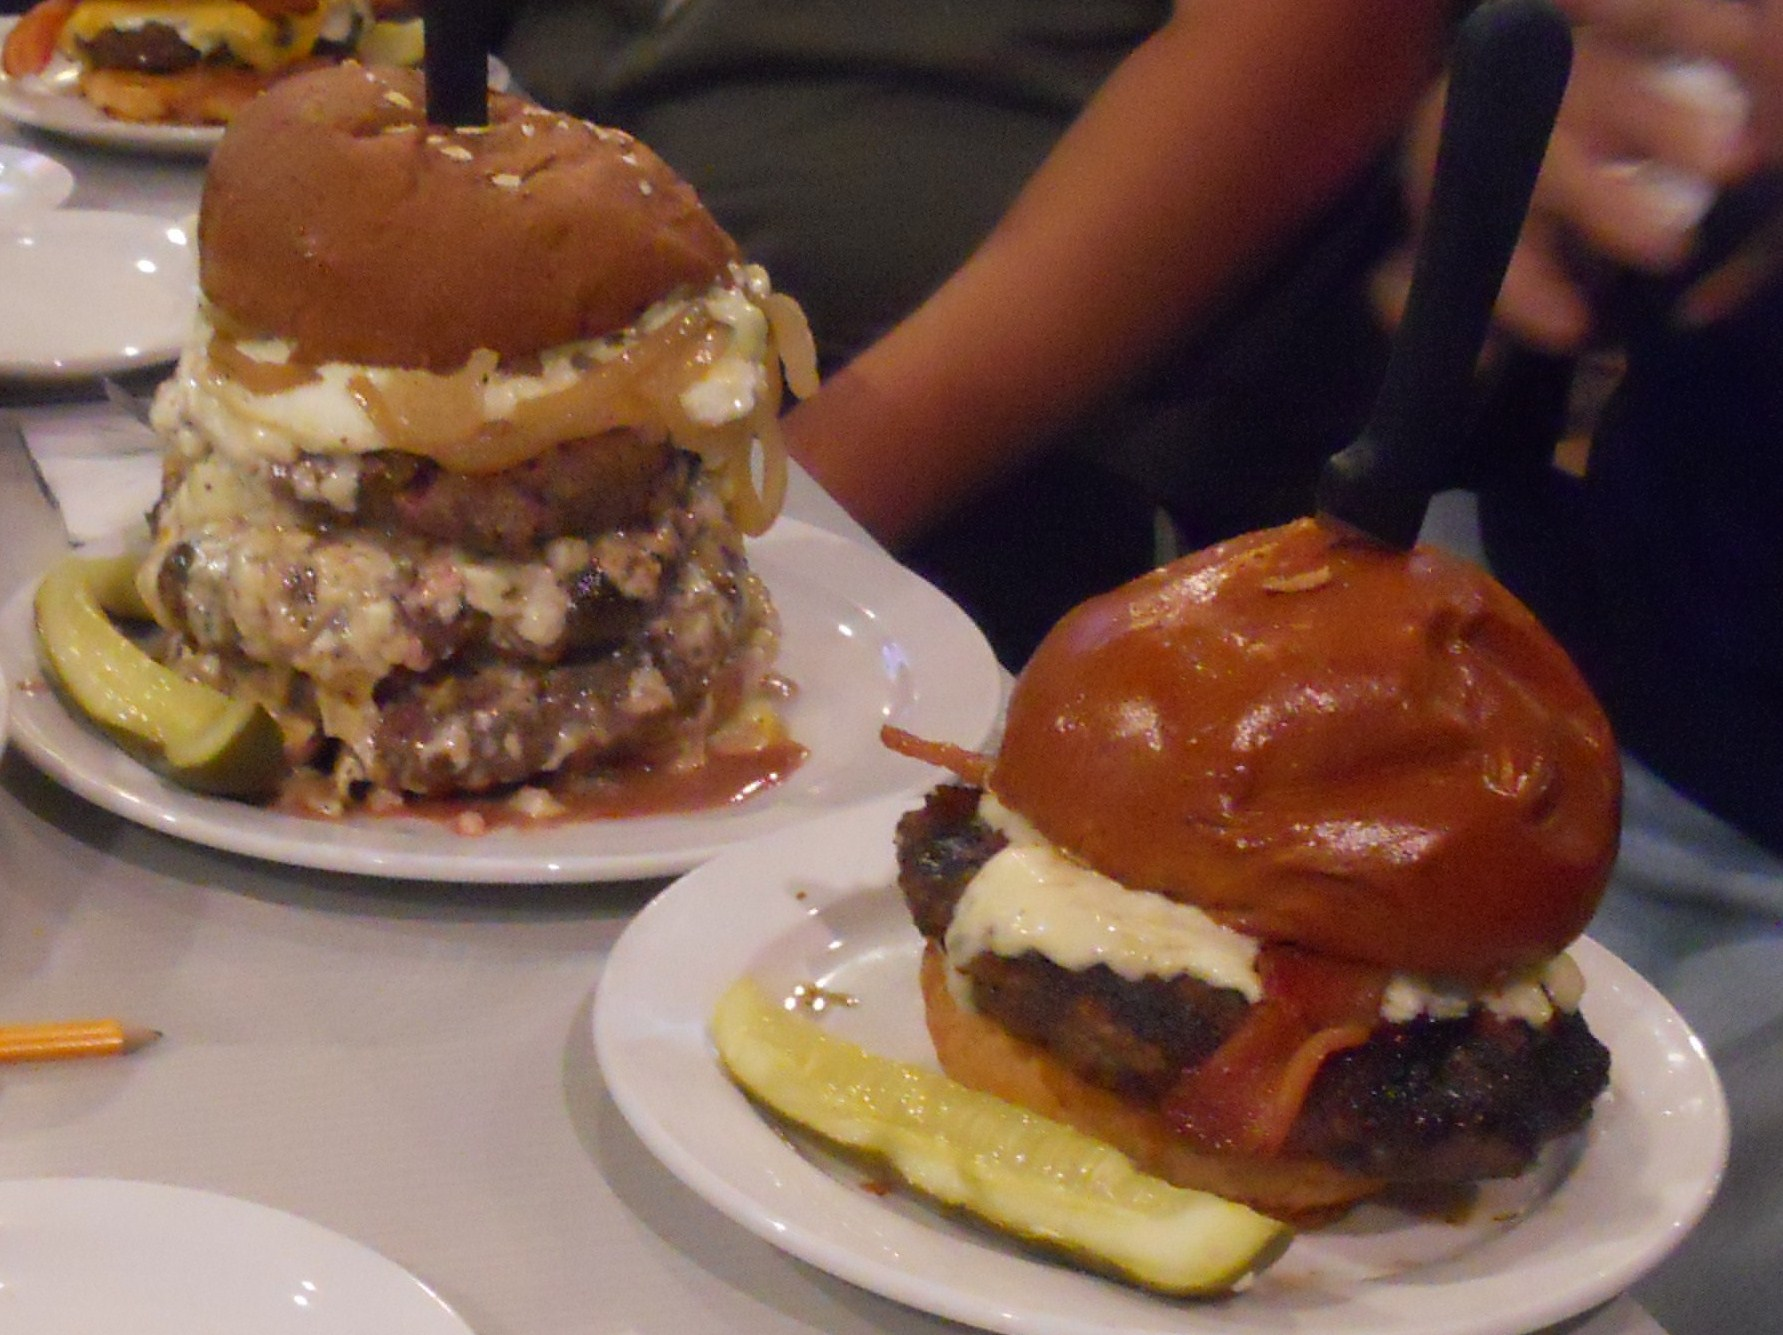 of Tidbits, a Food BlogSlater's 50/50: Burgers Designed With 50% Bacon ...